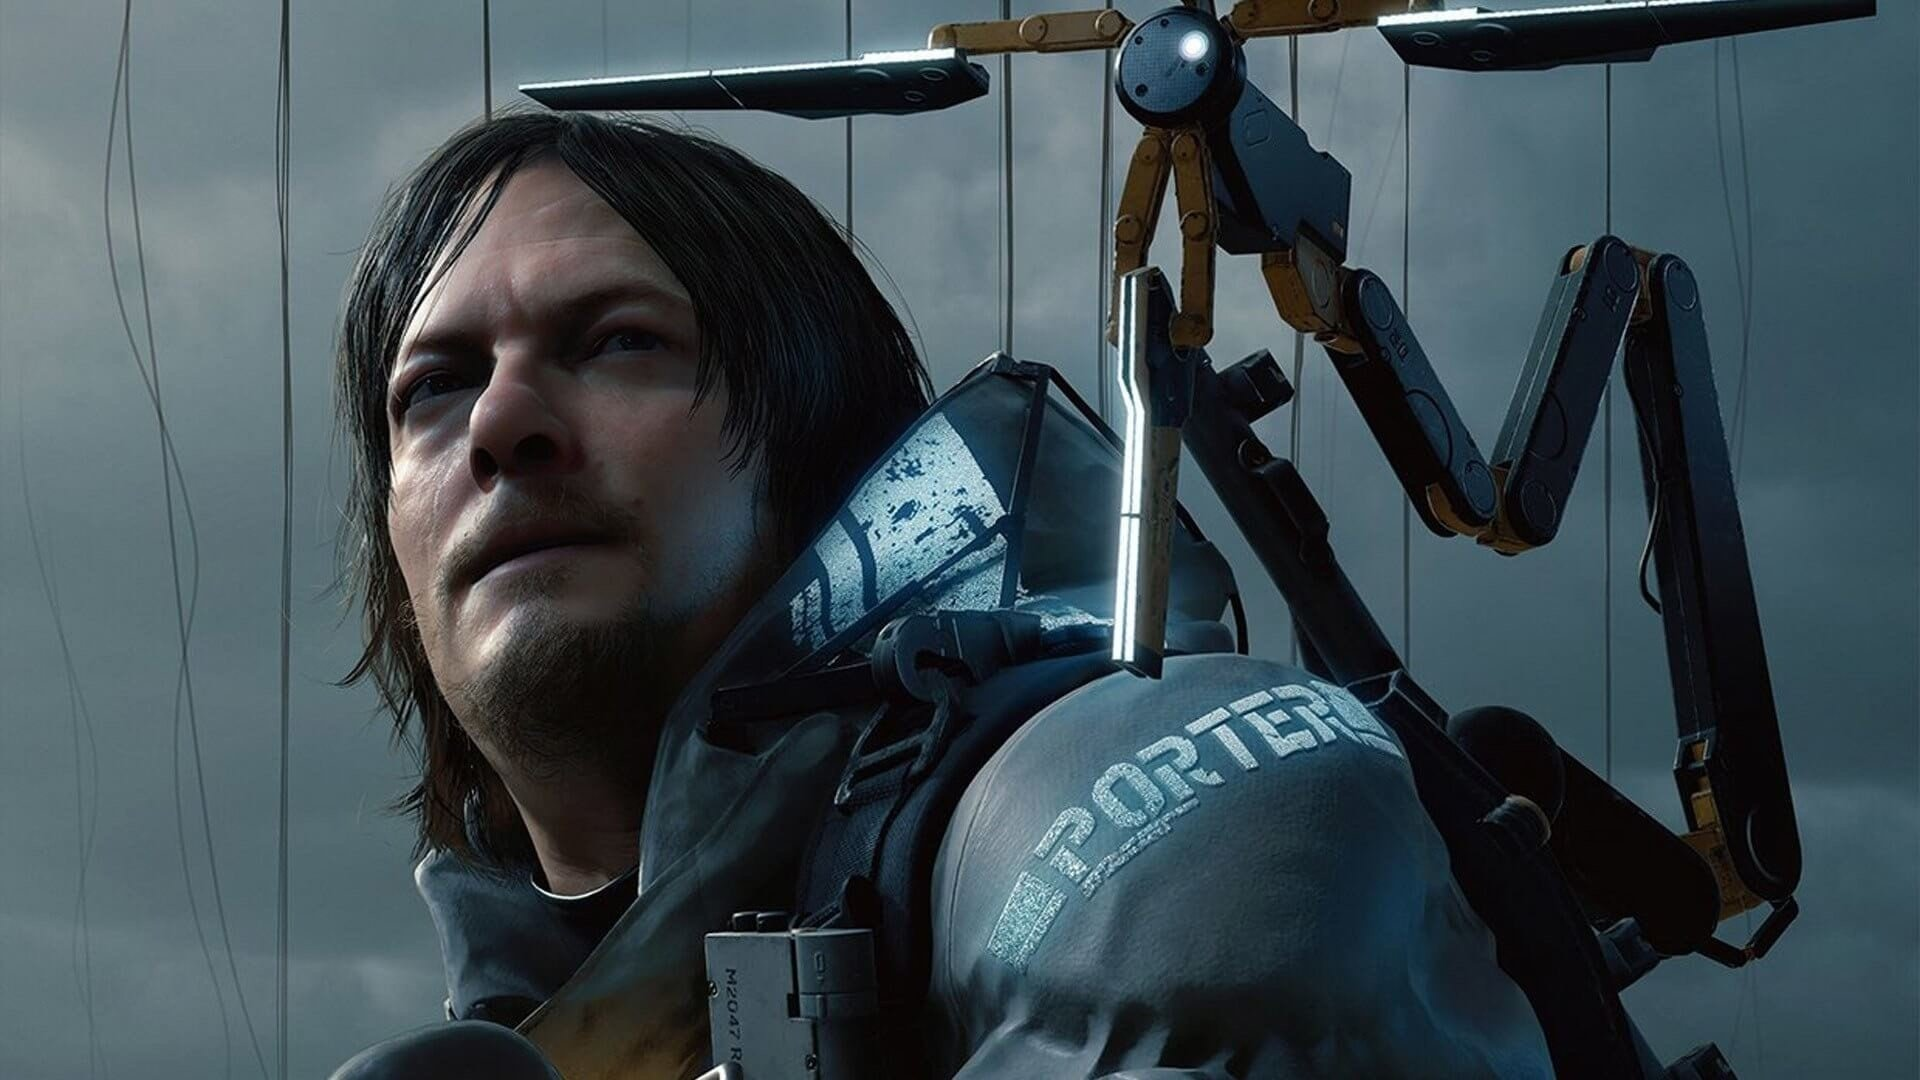 Death Stranding's Main Character Will Act Like Norman Reedus to Make Him More Relatable